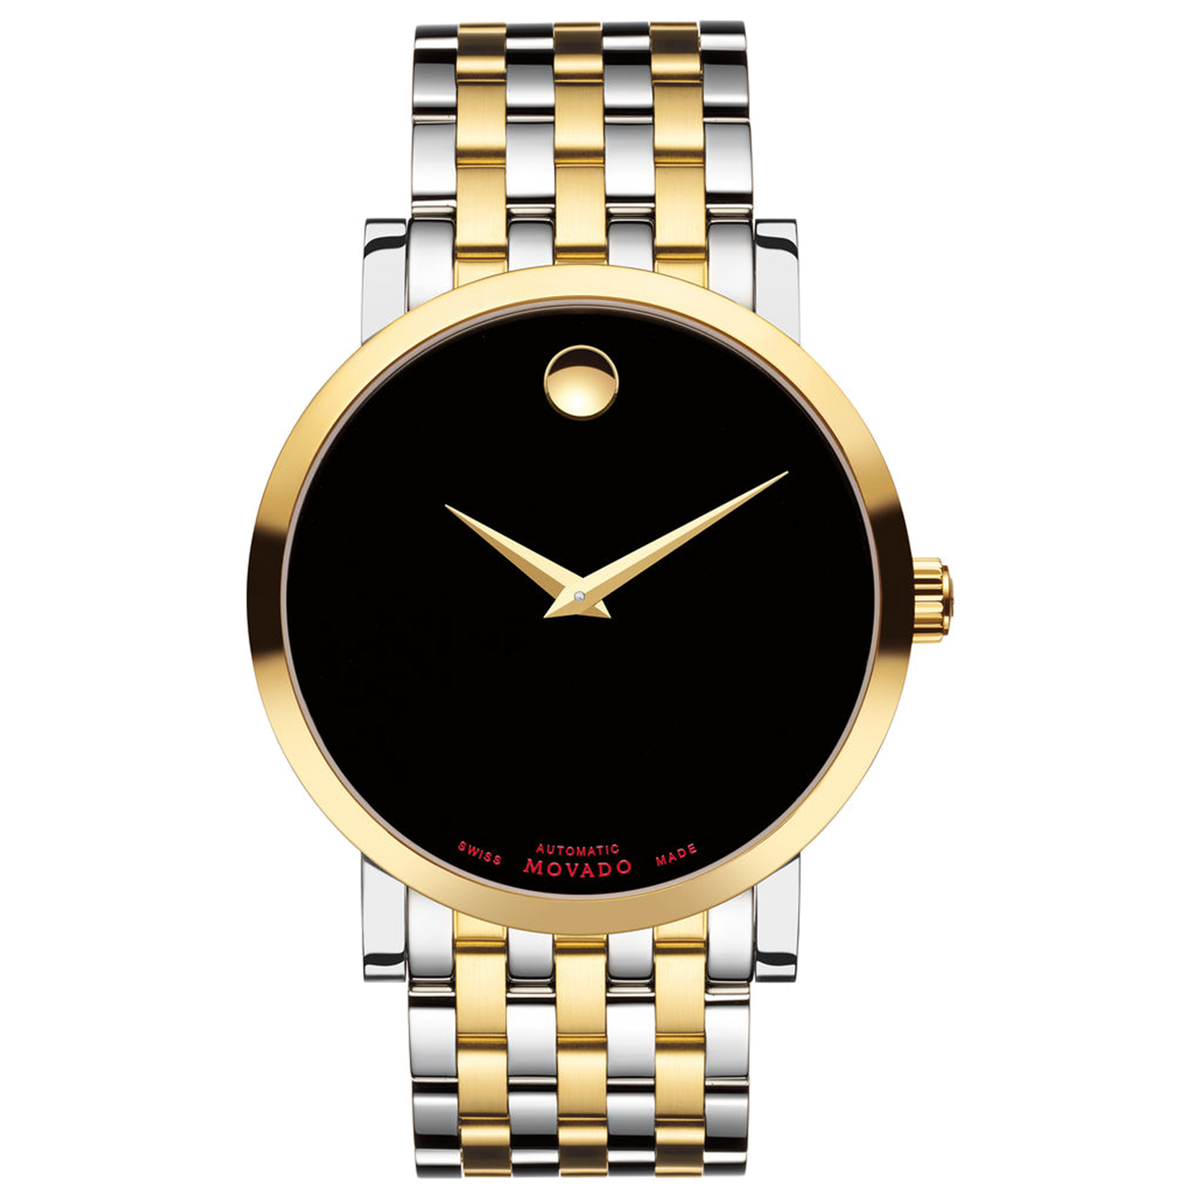 Movado Red Label - 2/T Automatic